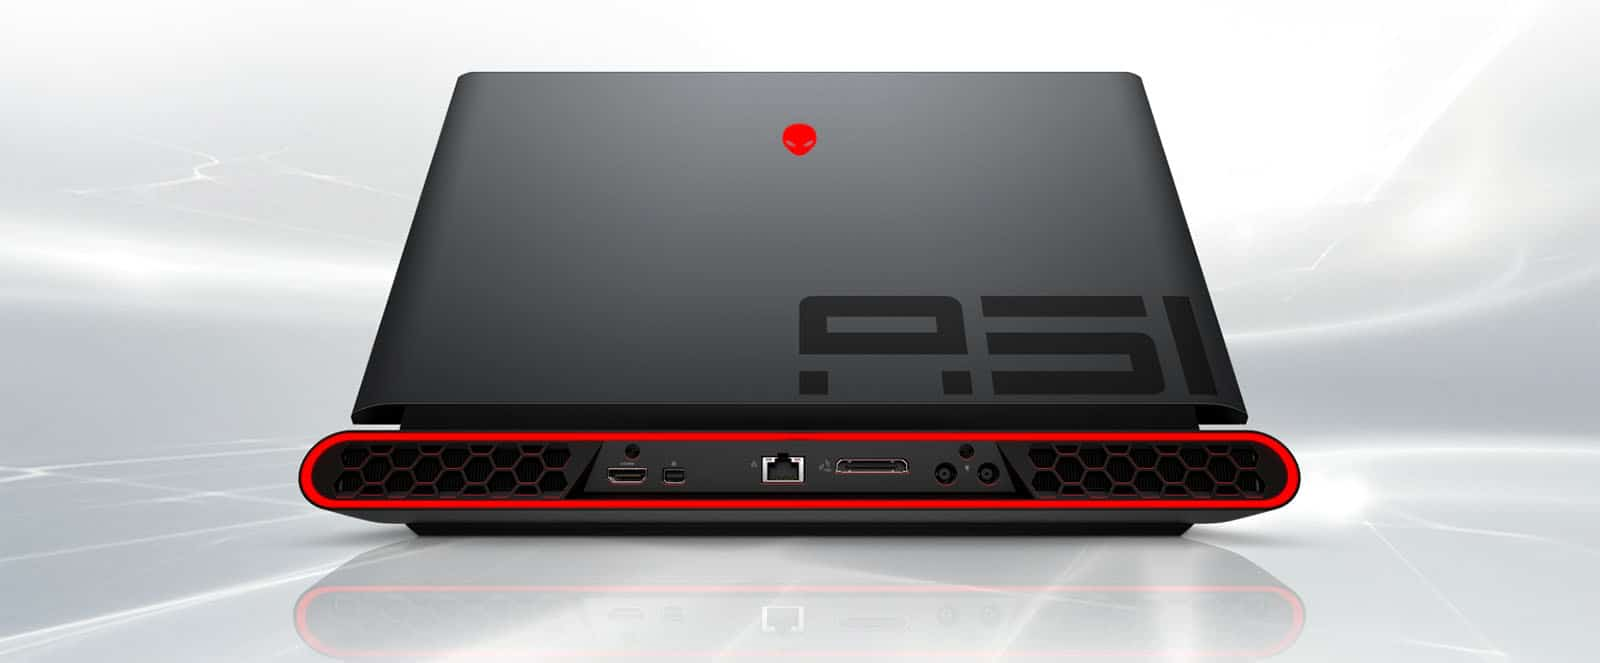 alienware area-51m featured image